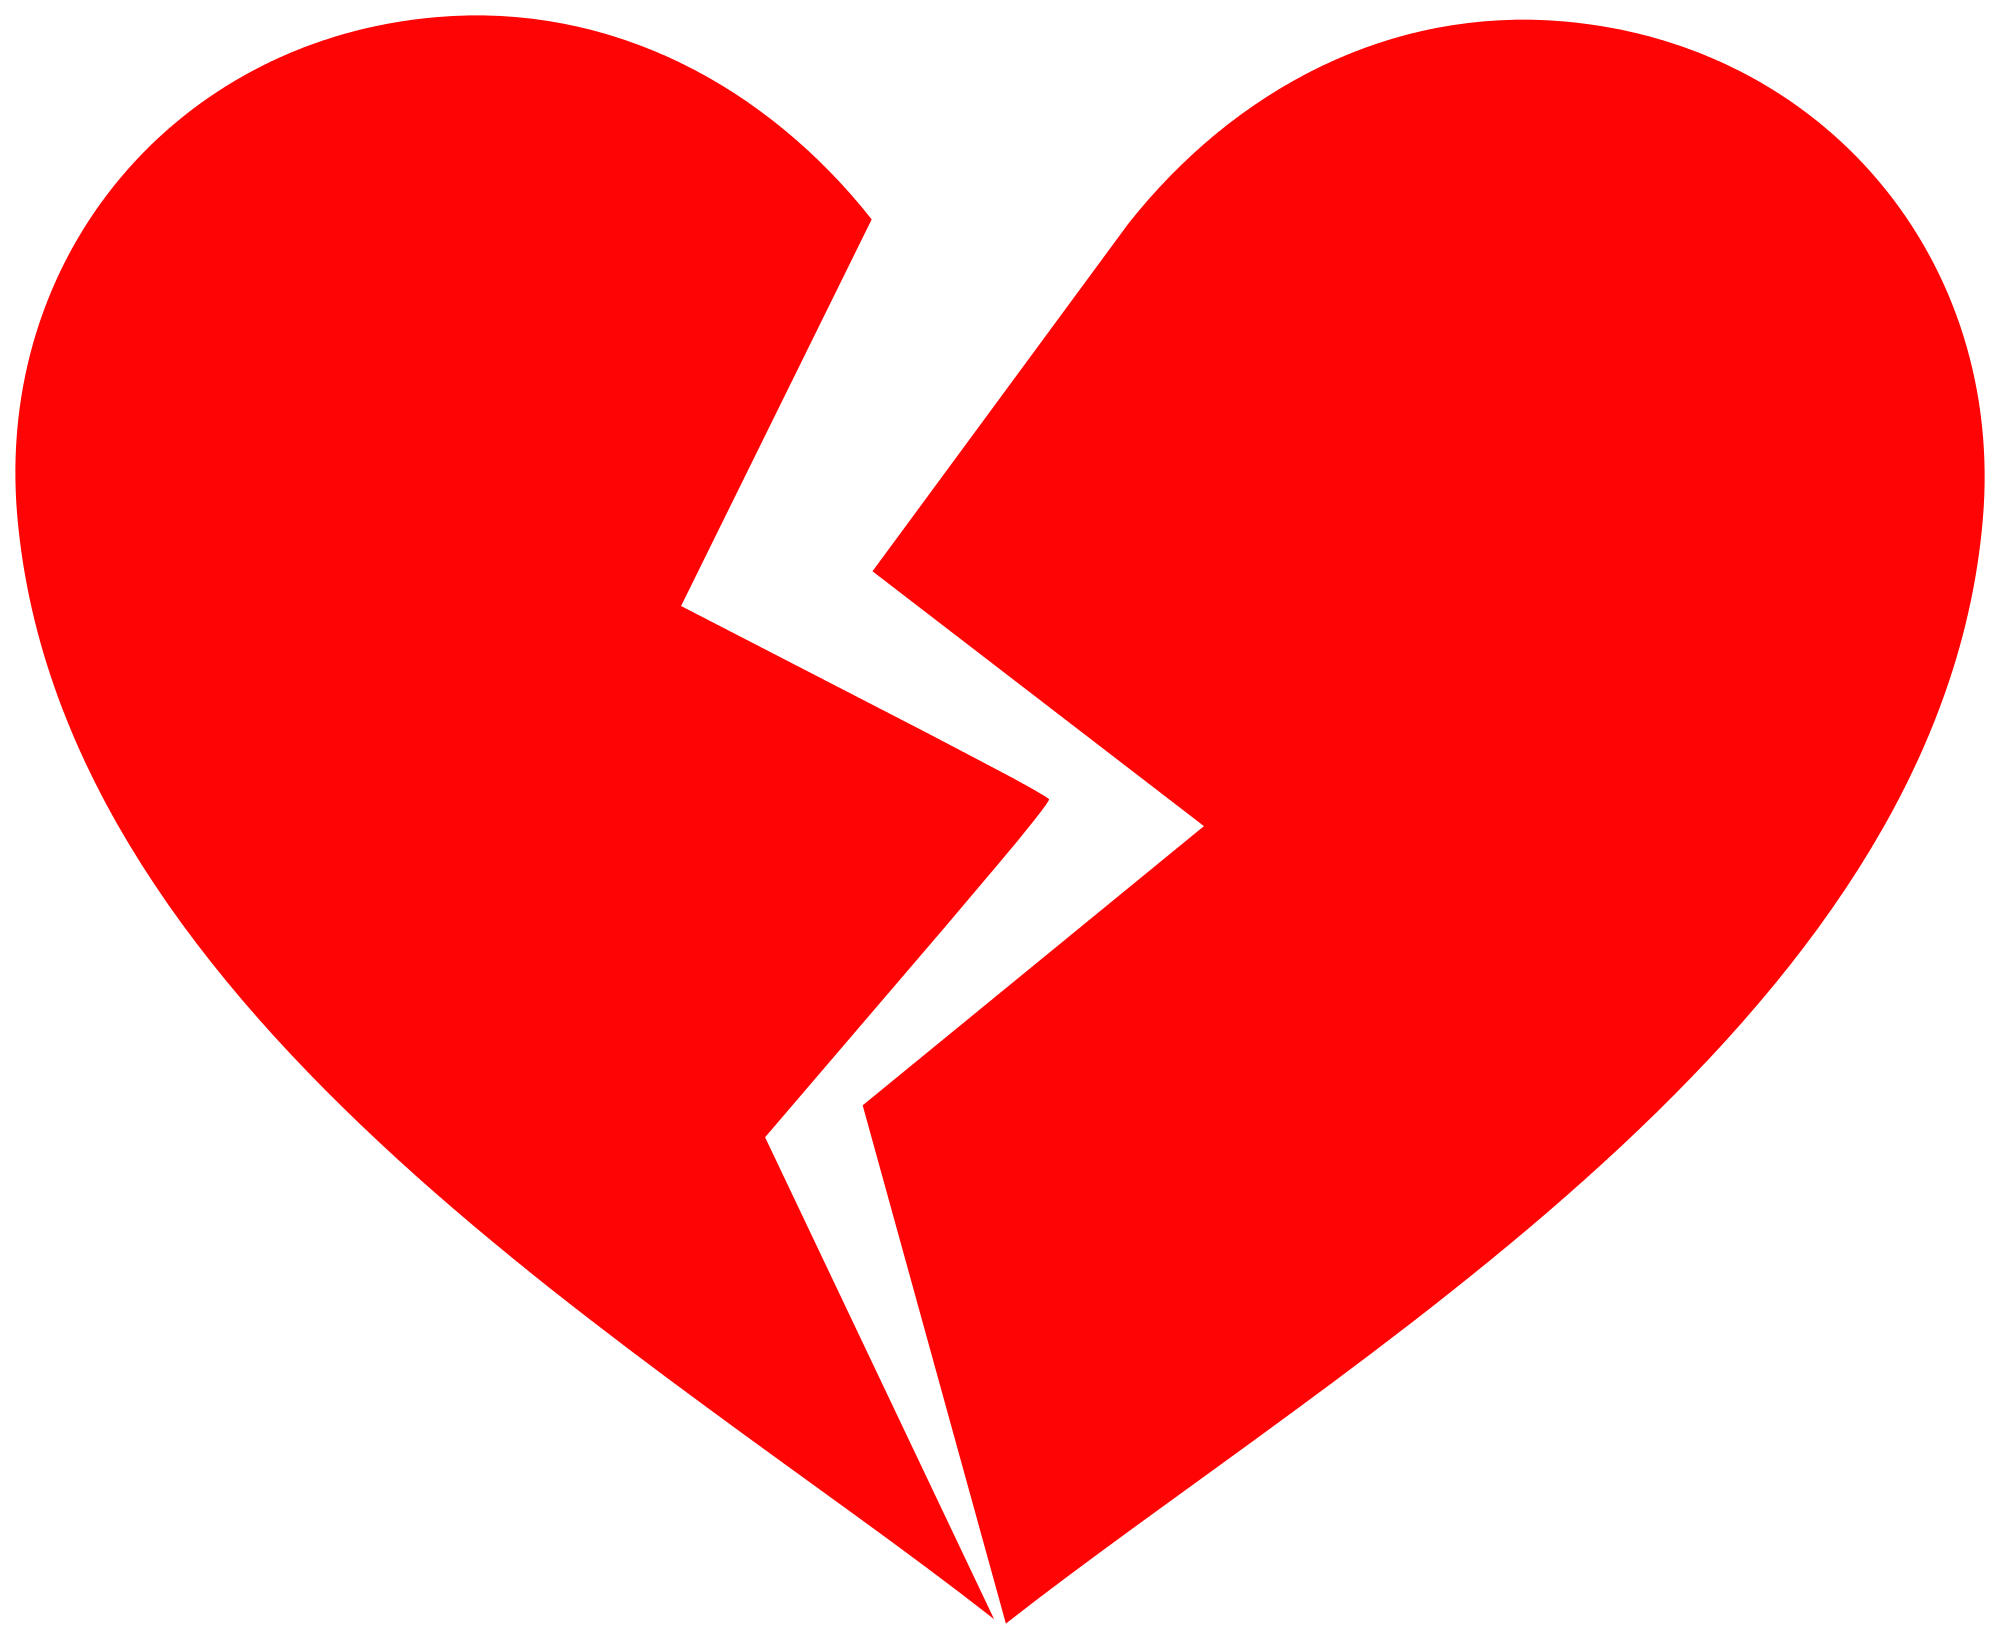 Heart png transparent background. Hd red broken free